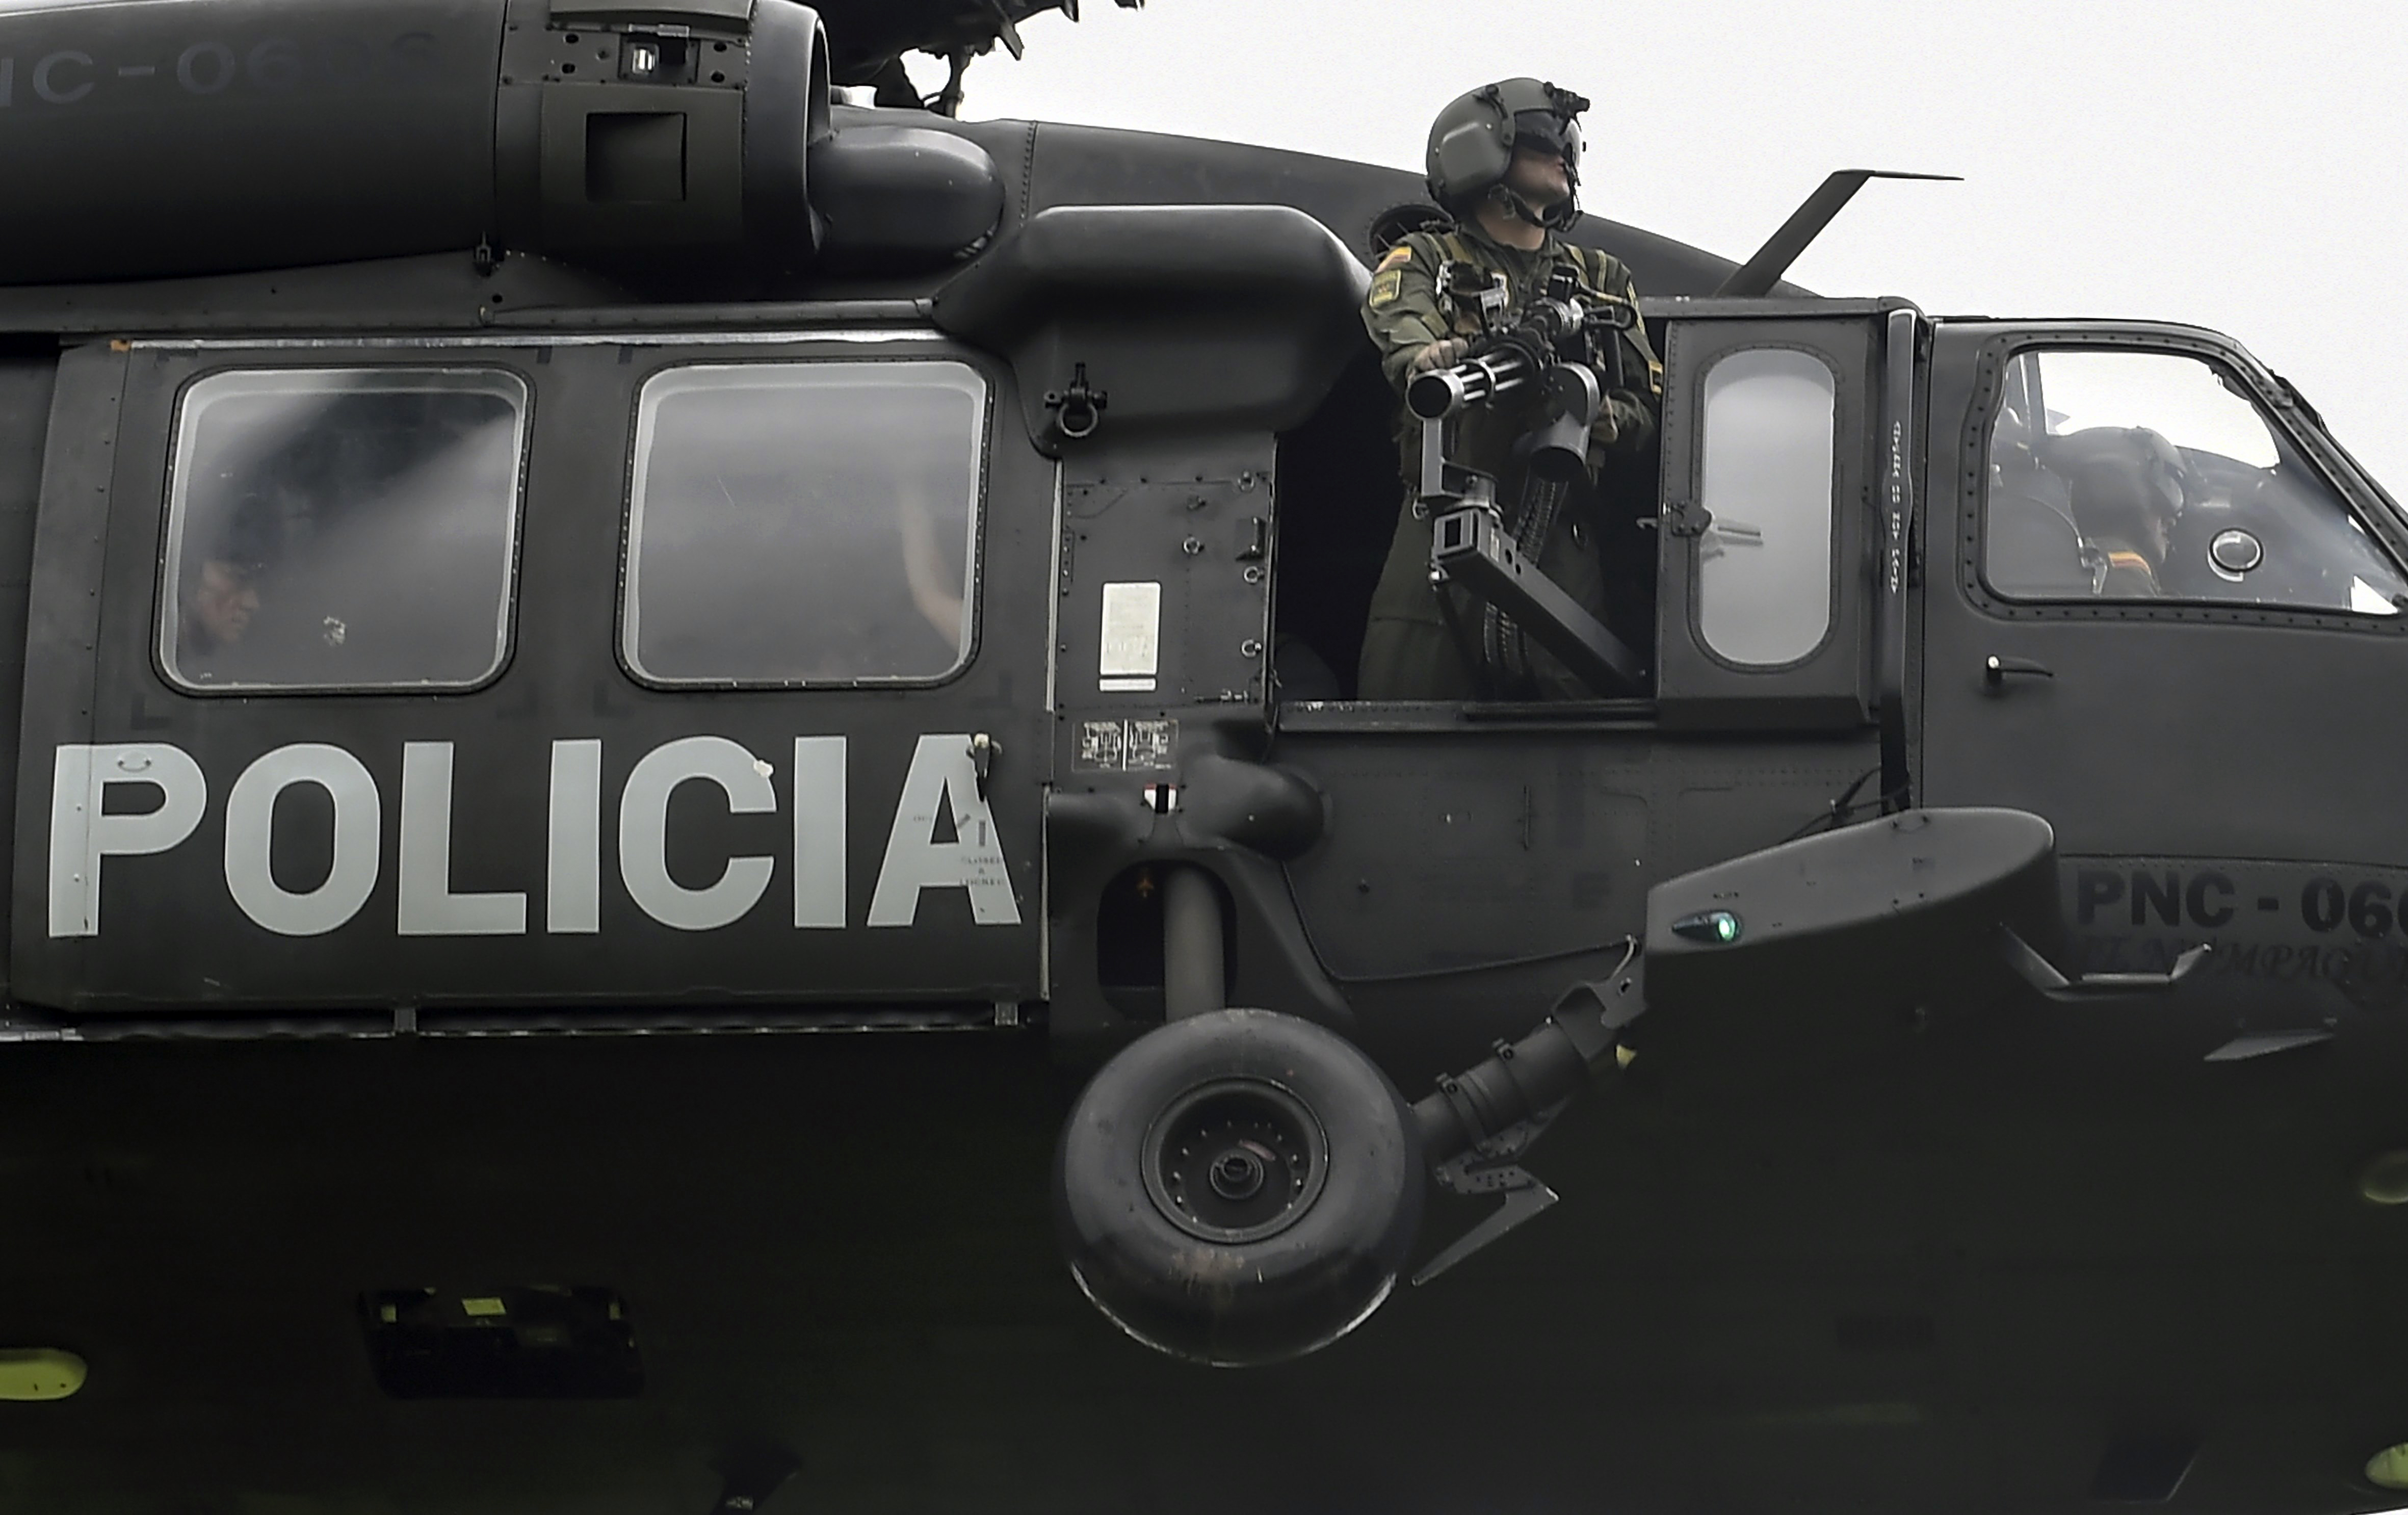 A helicopter used by Colombia's anti-narcotics police to throw pamphlets offering rewards for information leading to the capture of members of the Gulf Clan cartel overflies Apartado in Antioquia department, Colombia as part of the Agamemnon anti-drug trafficking operation on May 31, 2017.